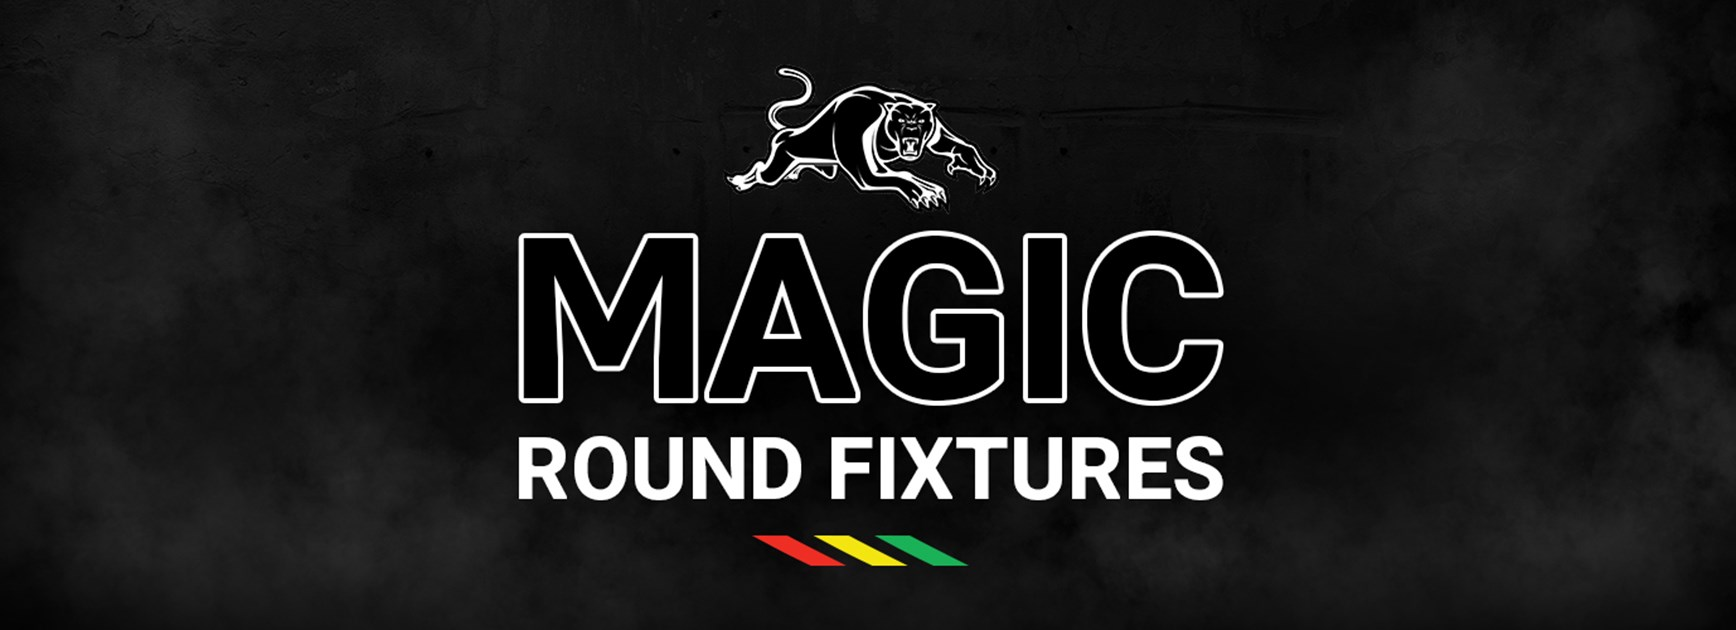 Panthers face Wests Tigers in Magic Round